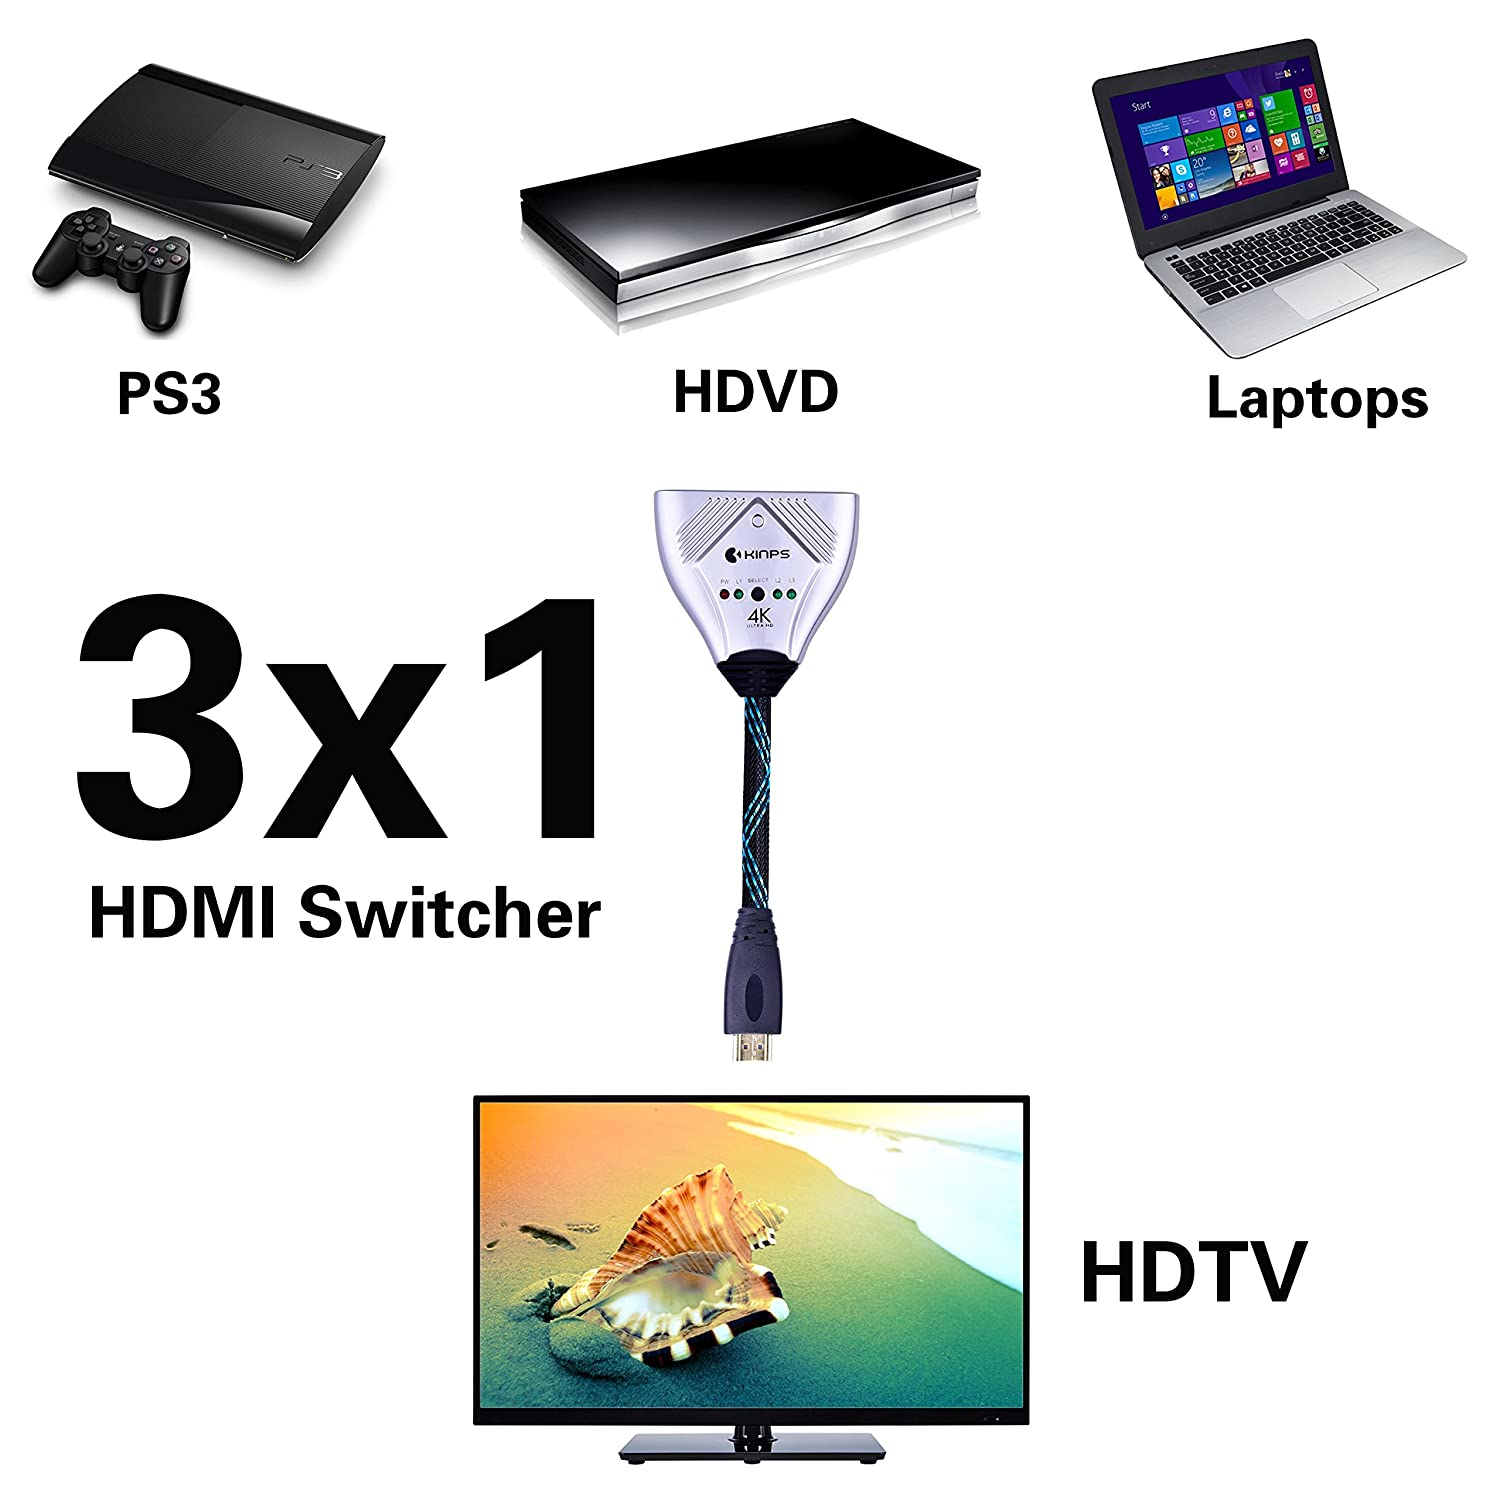 Hdmi Cable Kinps 3 Ports Switch Selector Black Web Wire Diagram Box High Speed Switcher Supports 4k 1080p 3d Hd Video Audio For Fire Tv